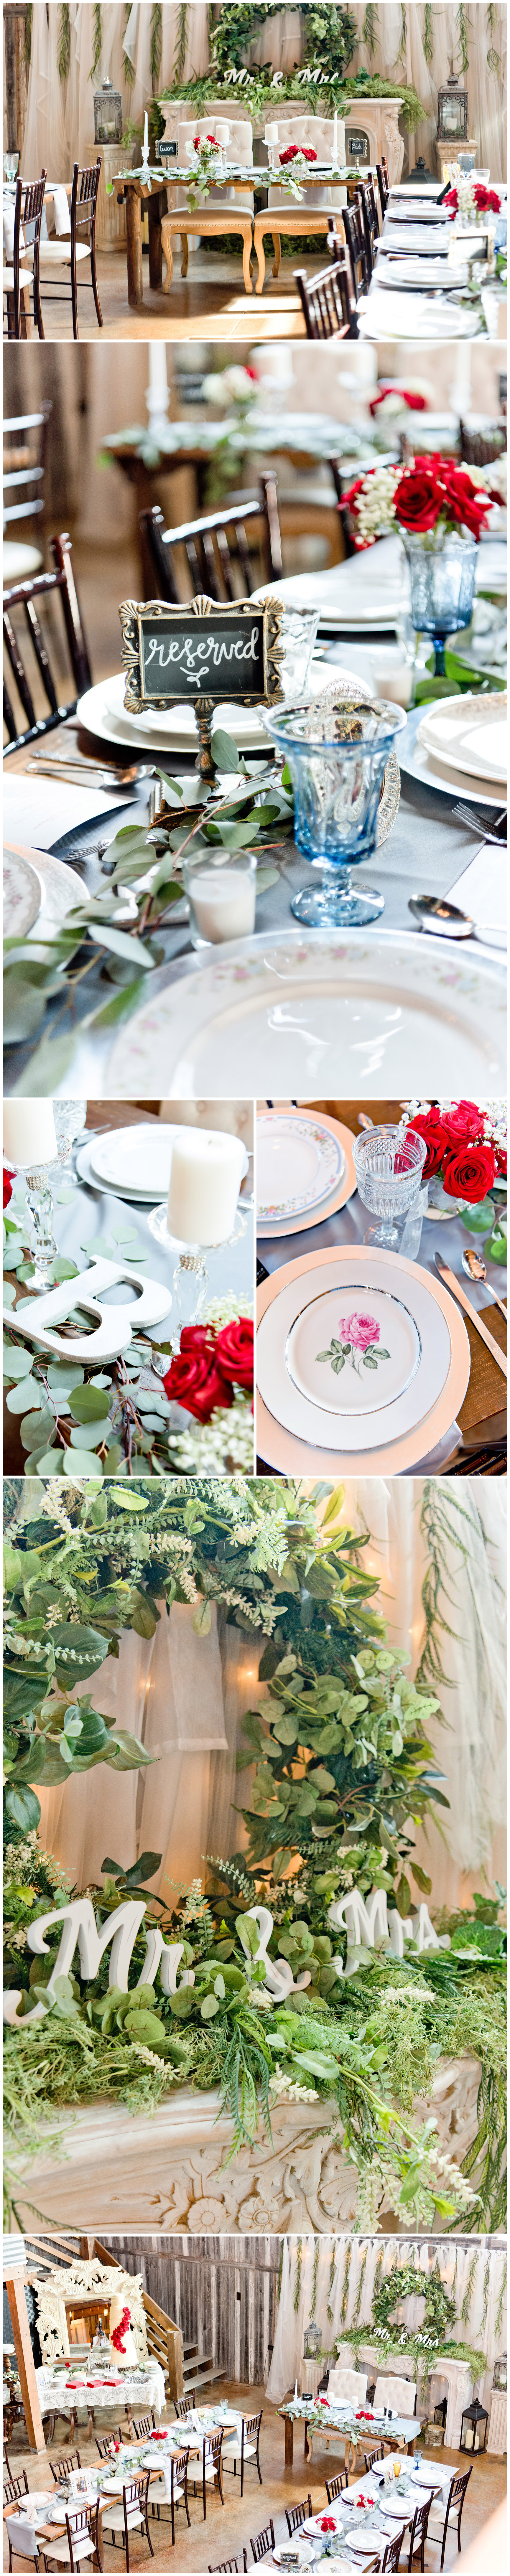 Red, Blue and Cream Wedding Reception